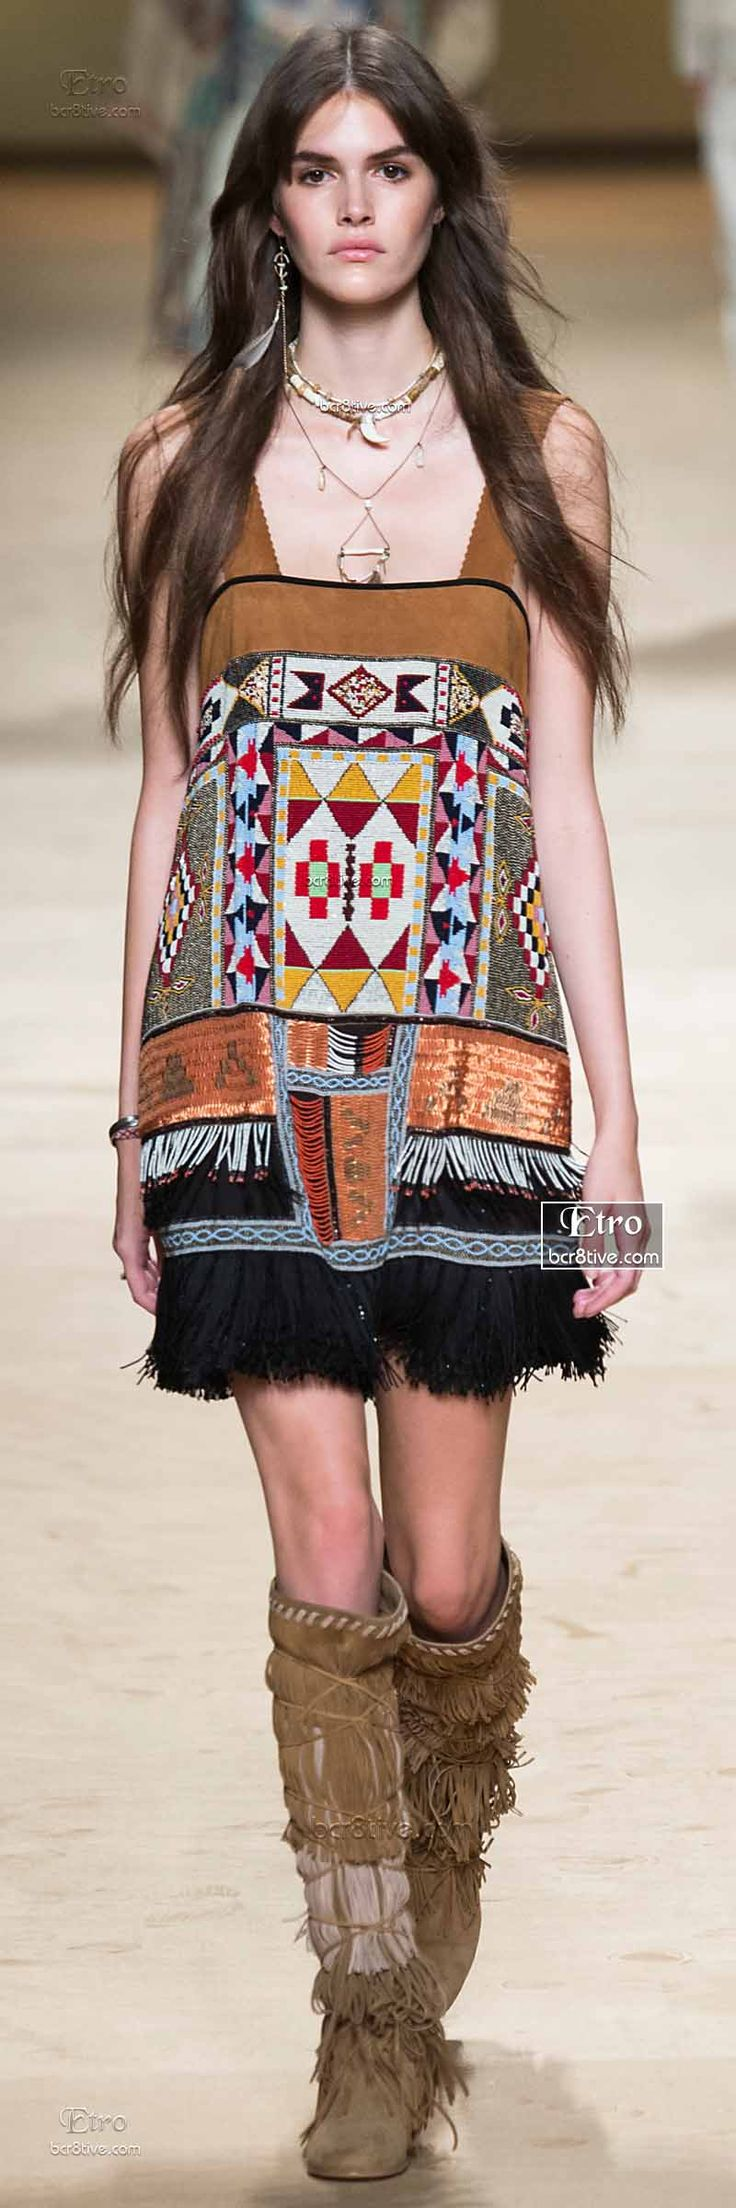 Native American Fashion On Pinterest